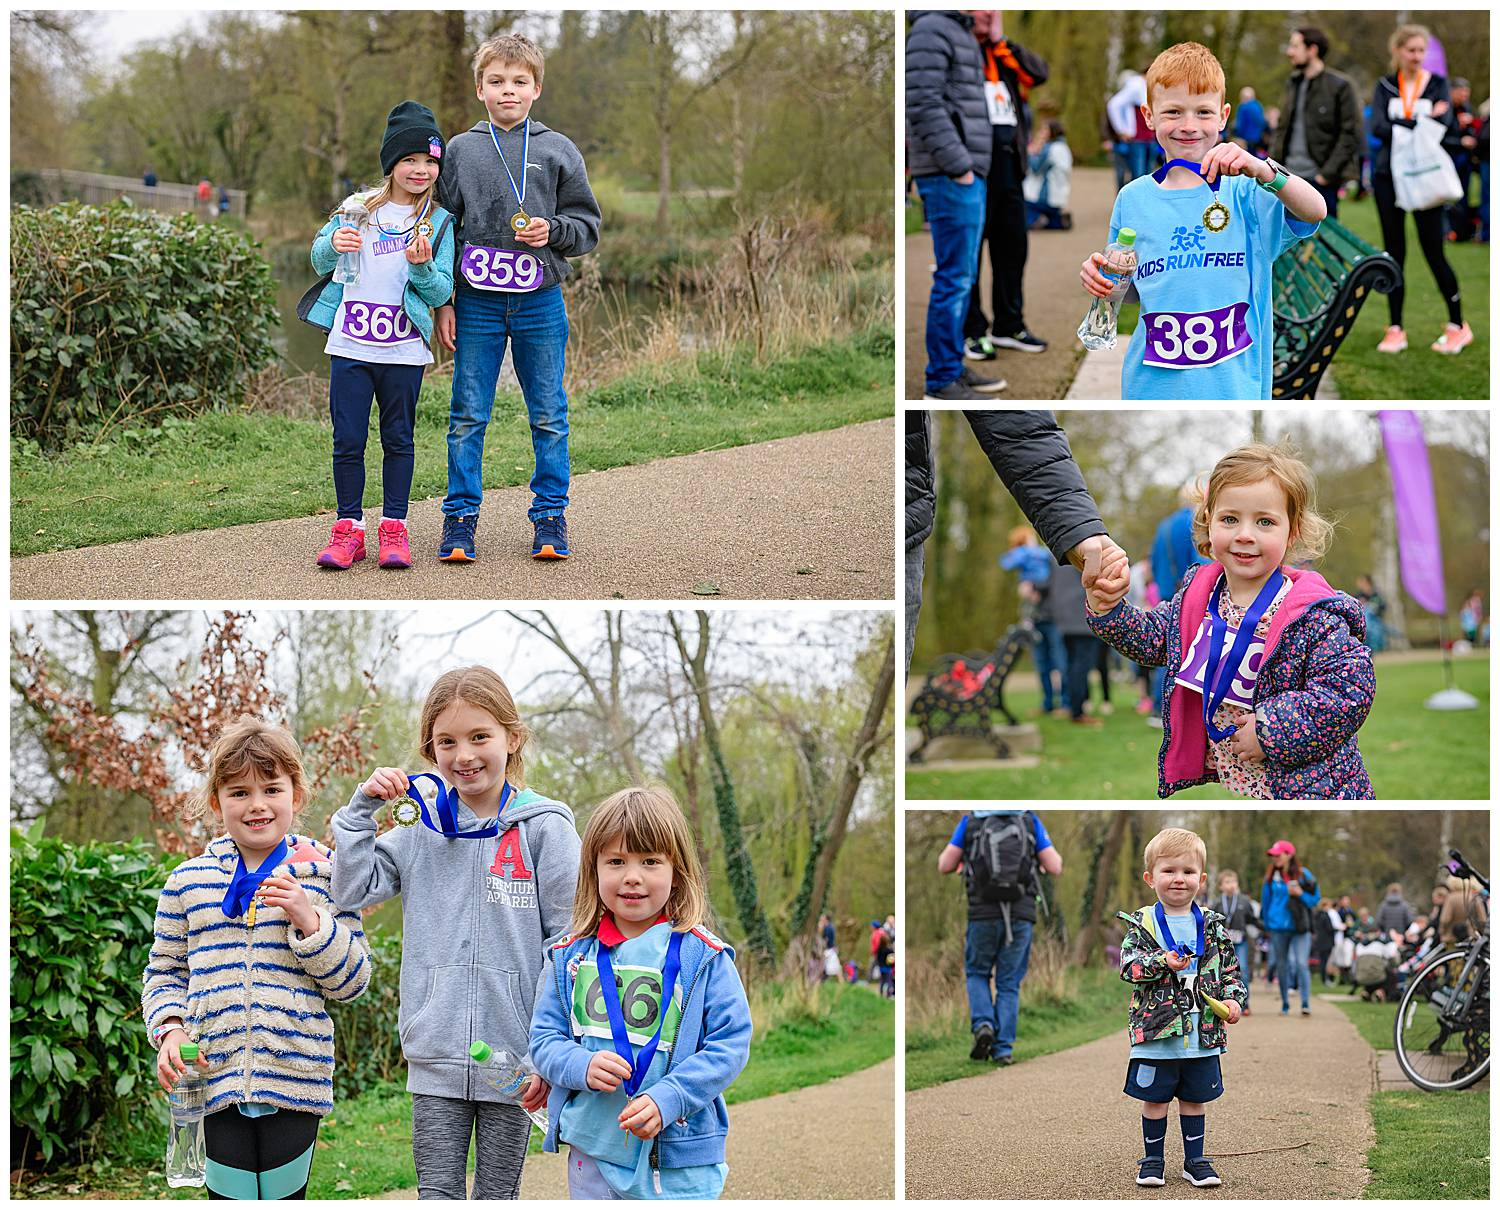 Montage of images of children showing off their running medals